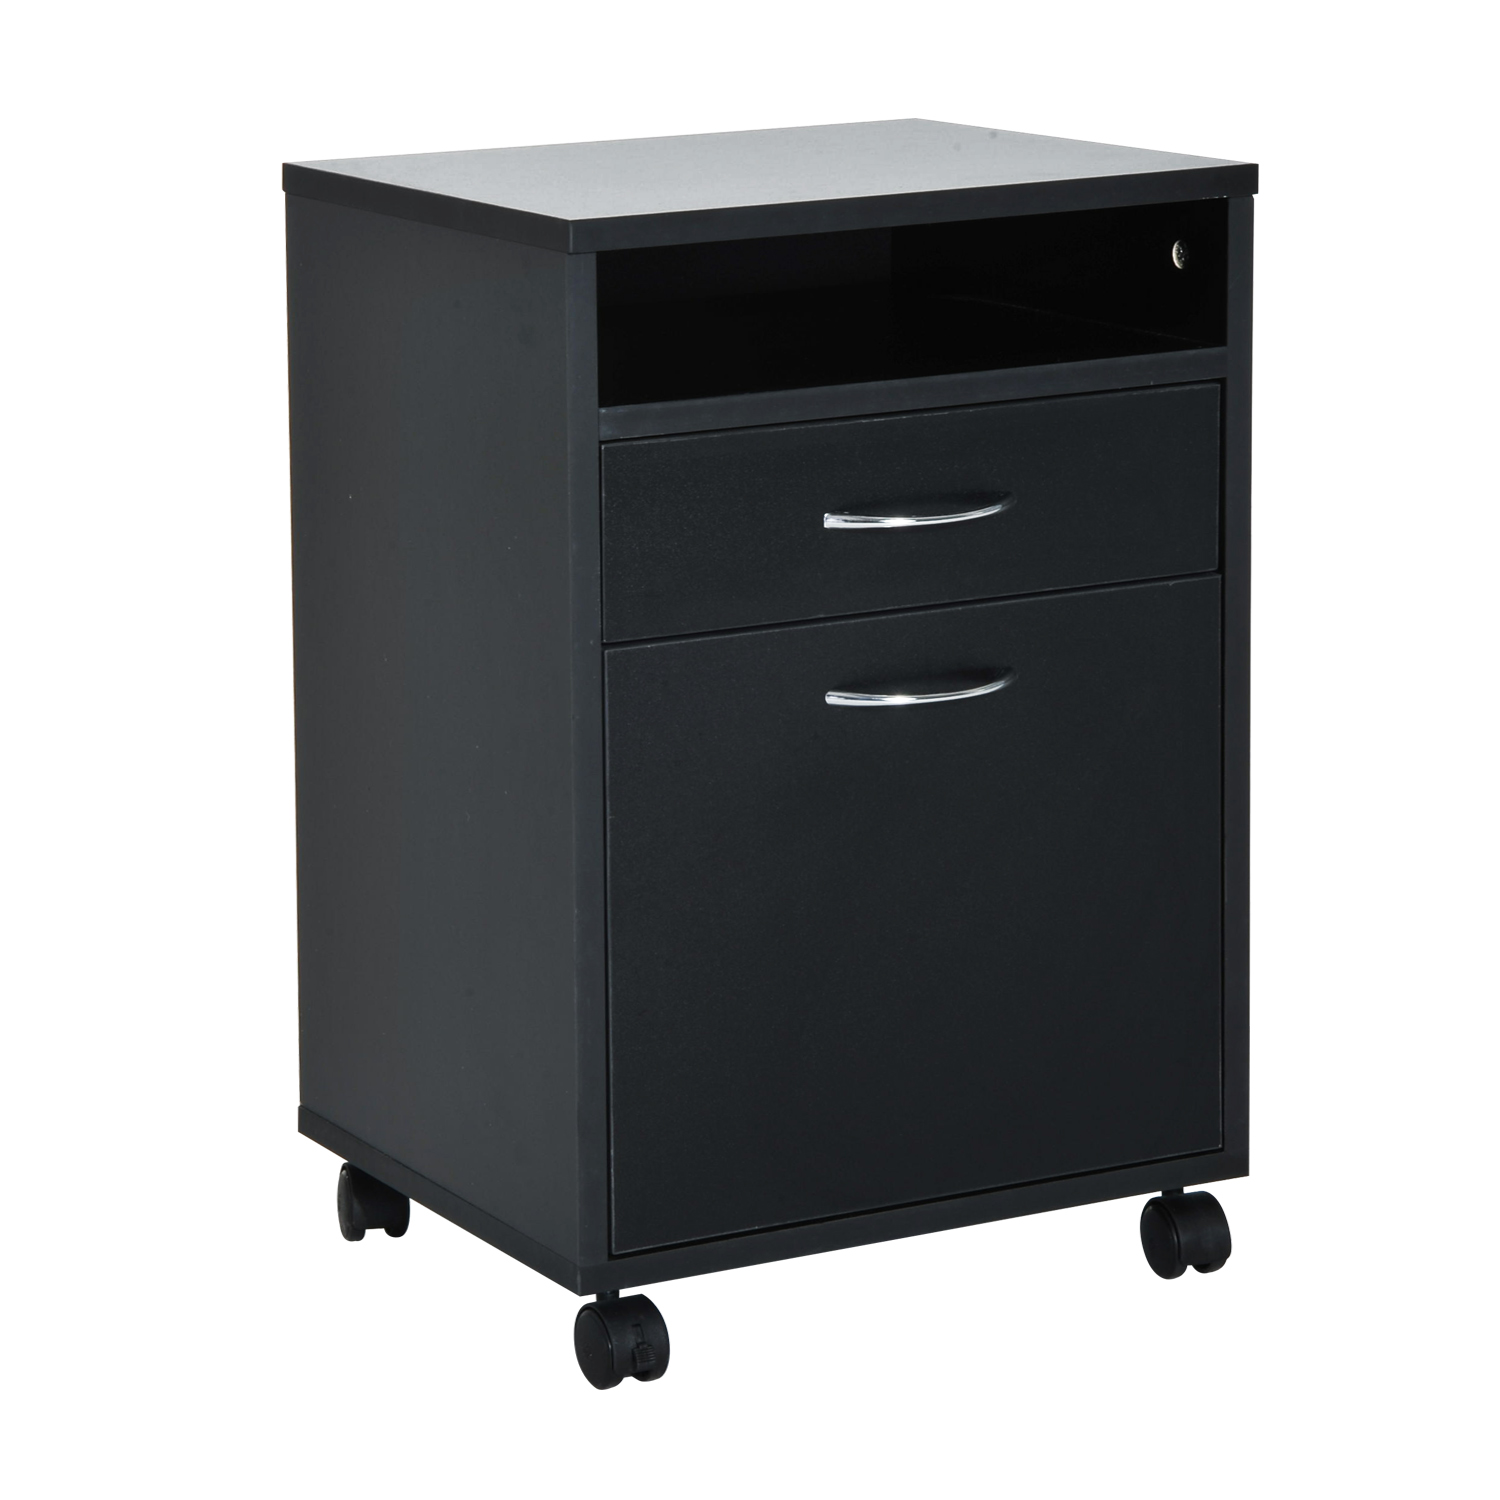 Homcom 24 Quot Mobile Printer Stand Office Storage Cabinet